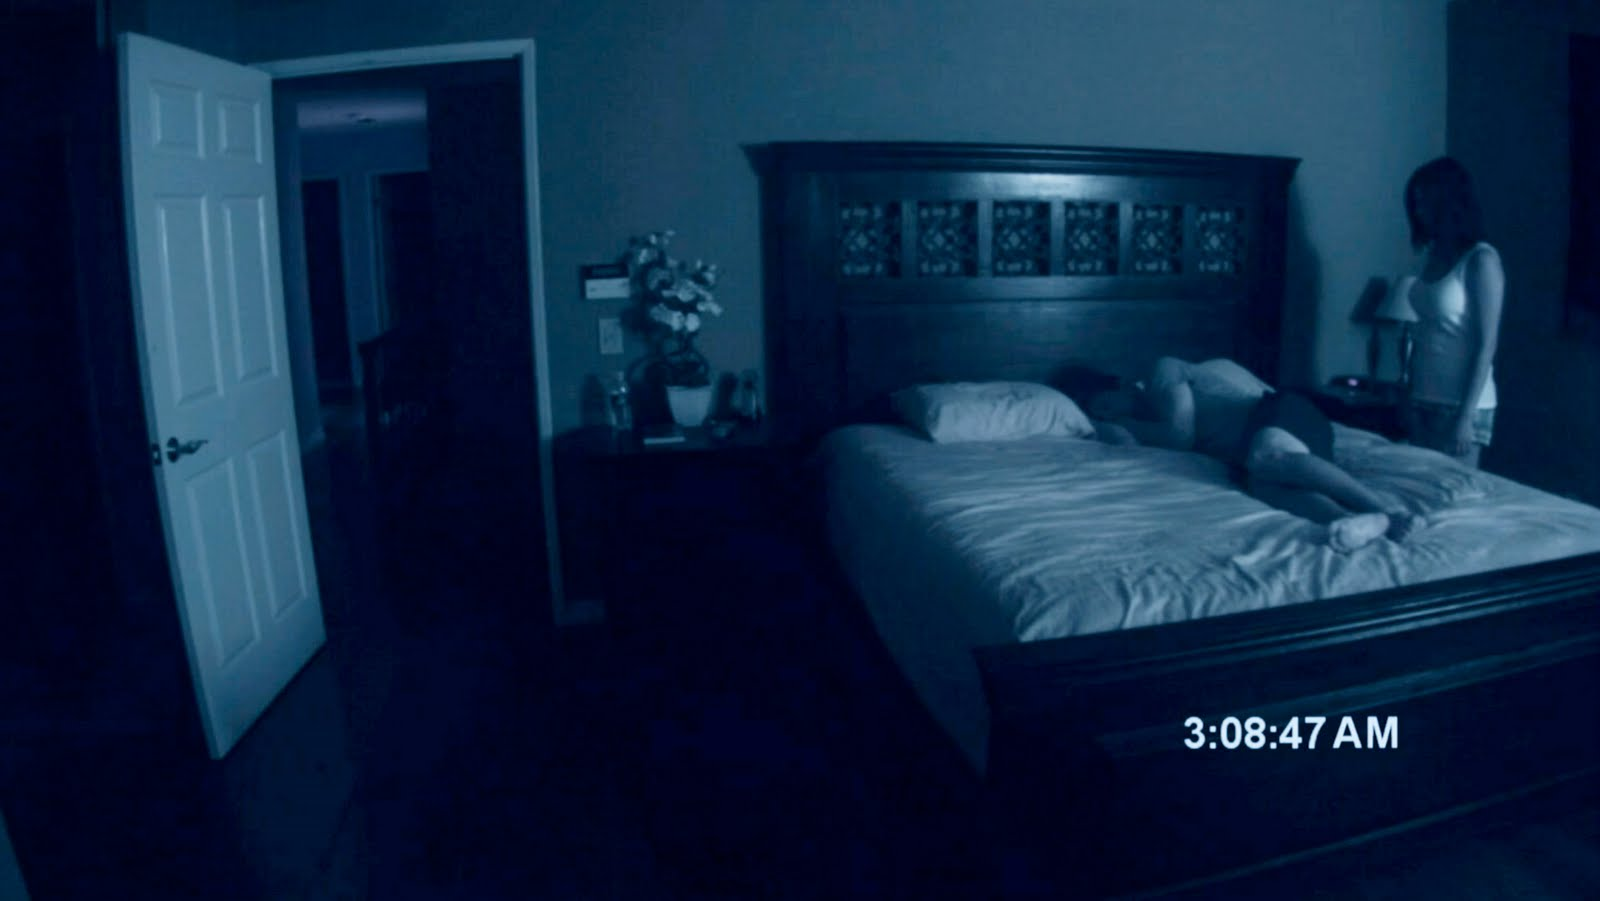 Real Paranormal Activity Drmerz